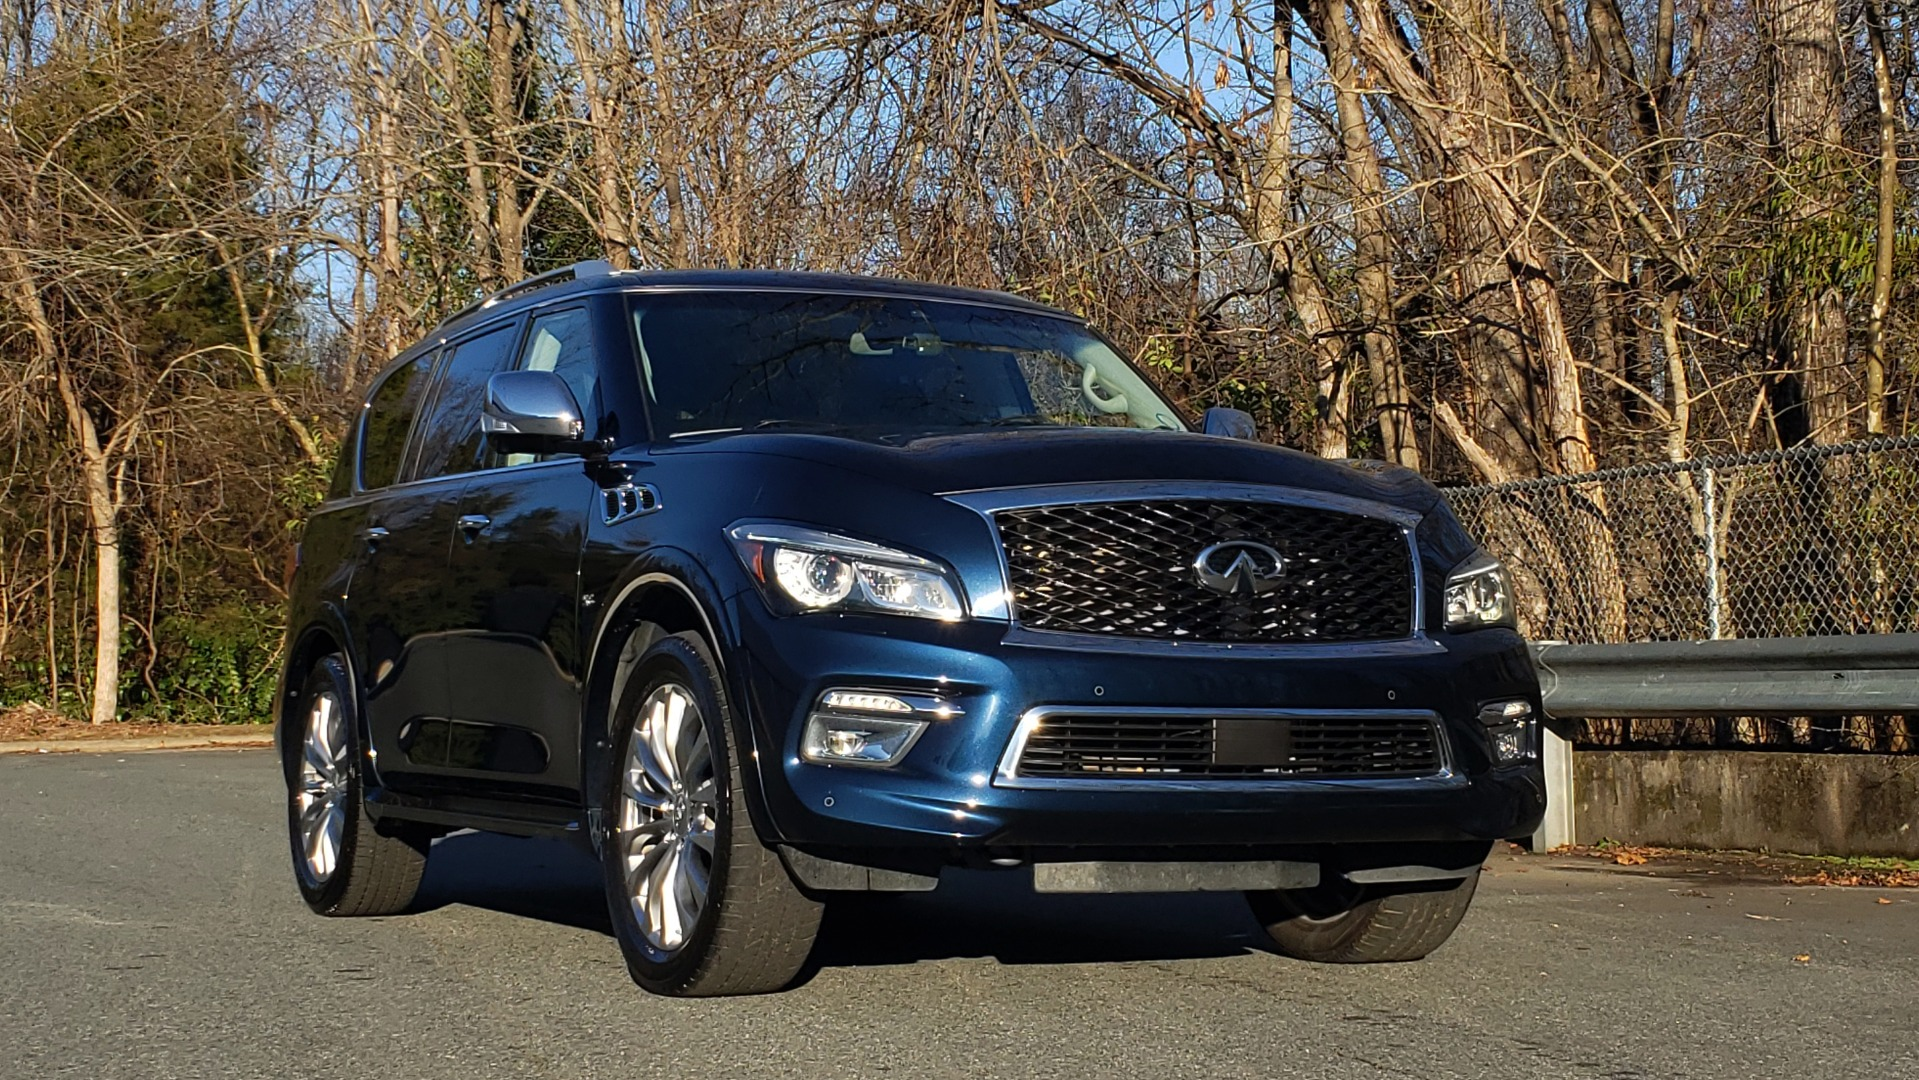 Used 2017 INFINITI QX80 4WD / NAV / SUNROOF / 3-ROW / THEATER PKG / REARVIEW for sale $46,495 at Formula Imports in Charlotte NC 28227 5